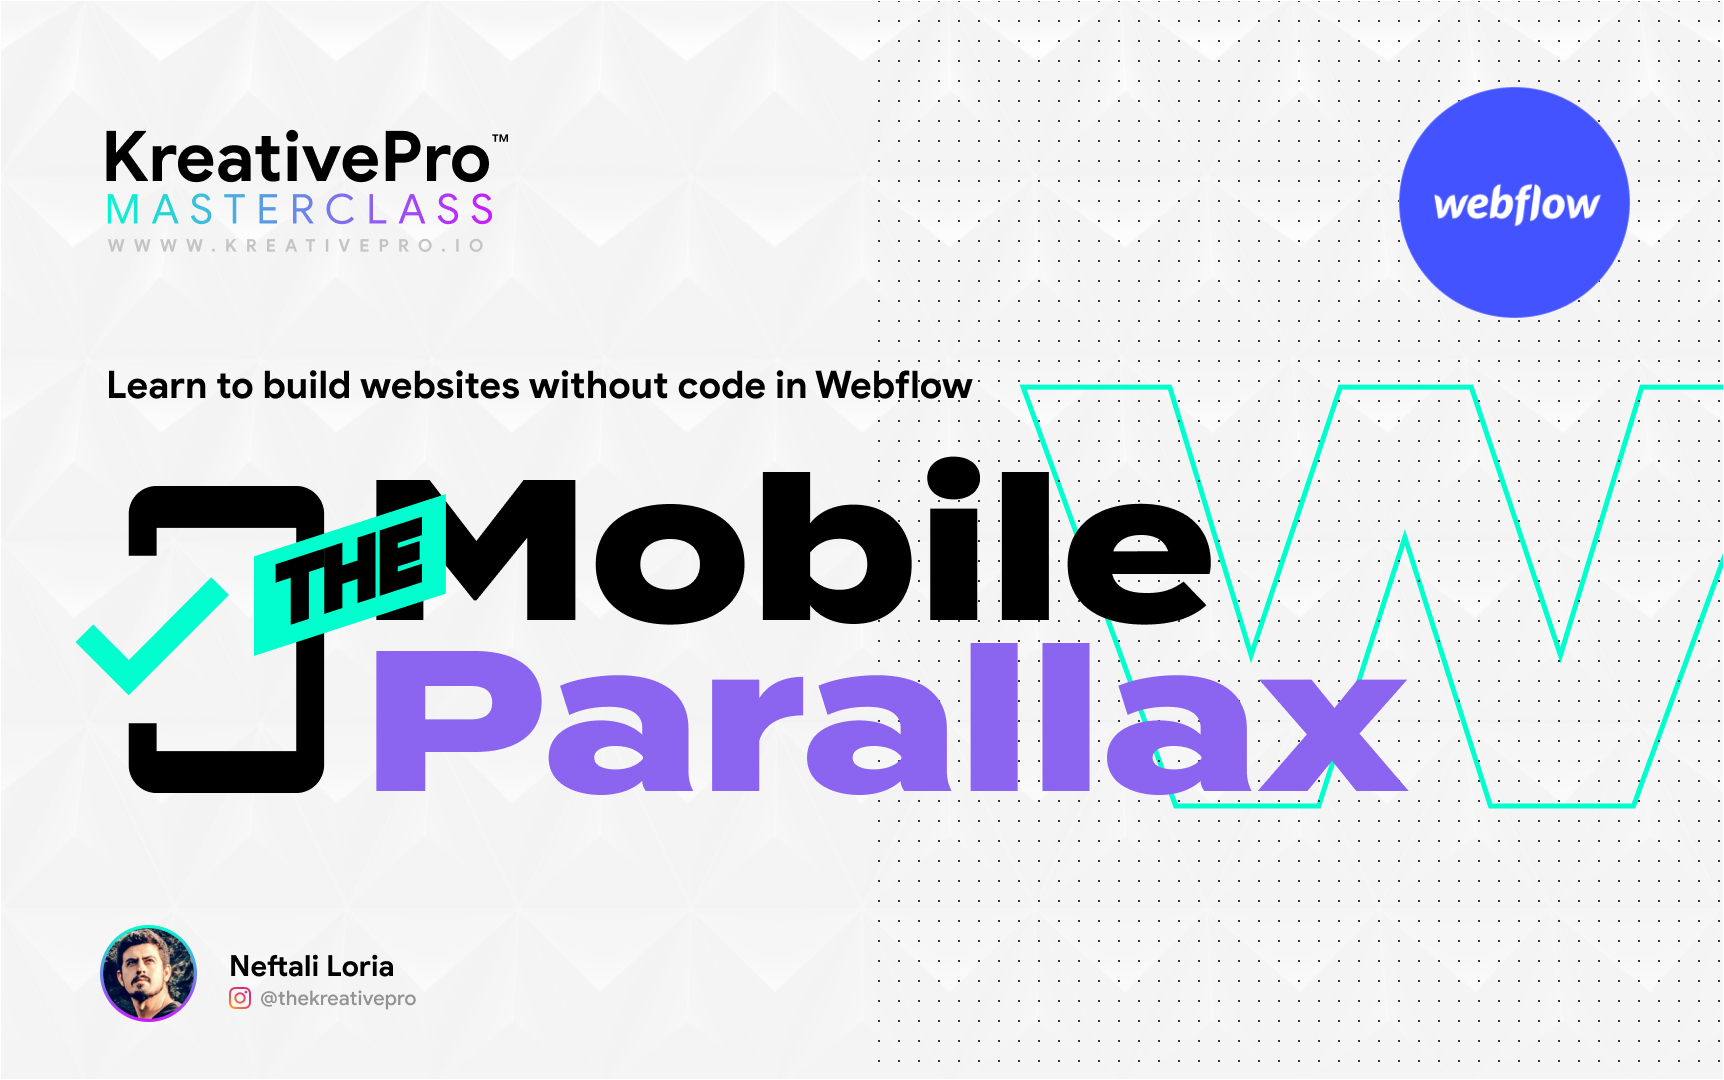 Webflow 4.7 - The Mobile Parallax